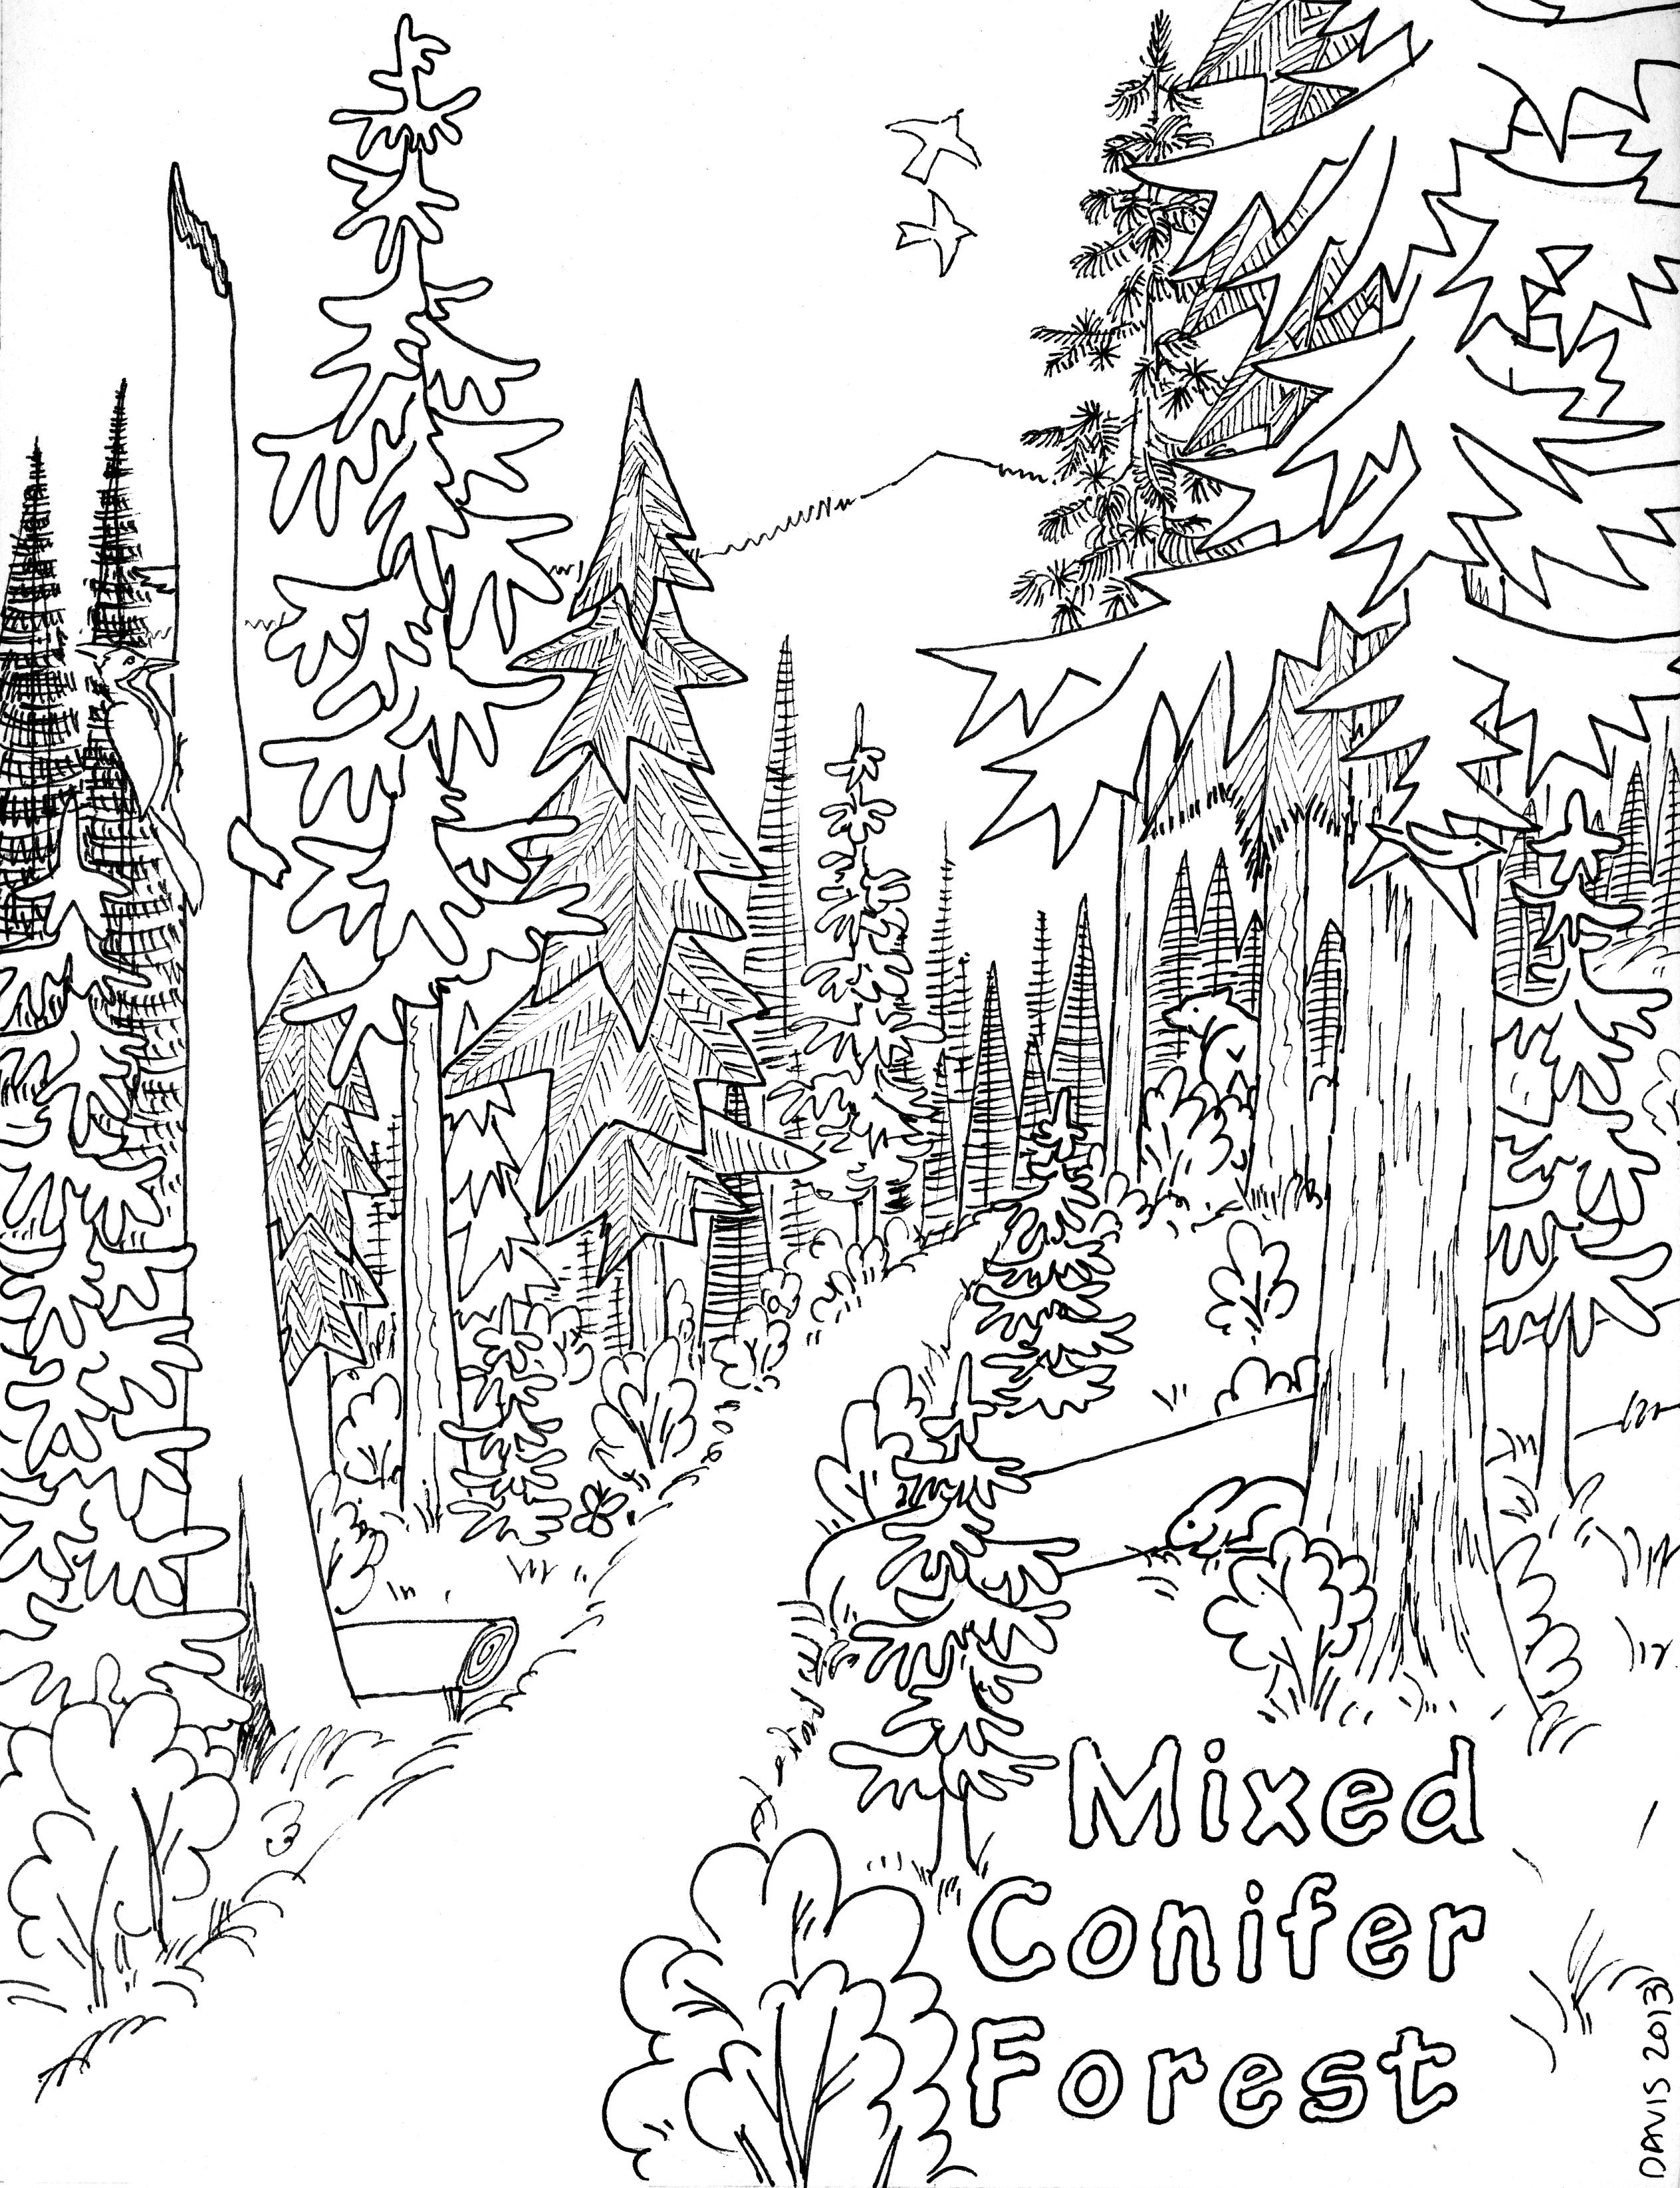 Free coloring pages rainy day - Celebrating Trees Online Coloringcoloring Pages